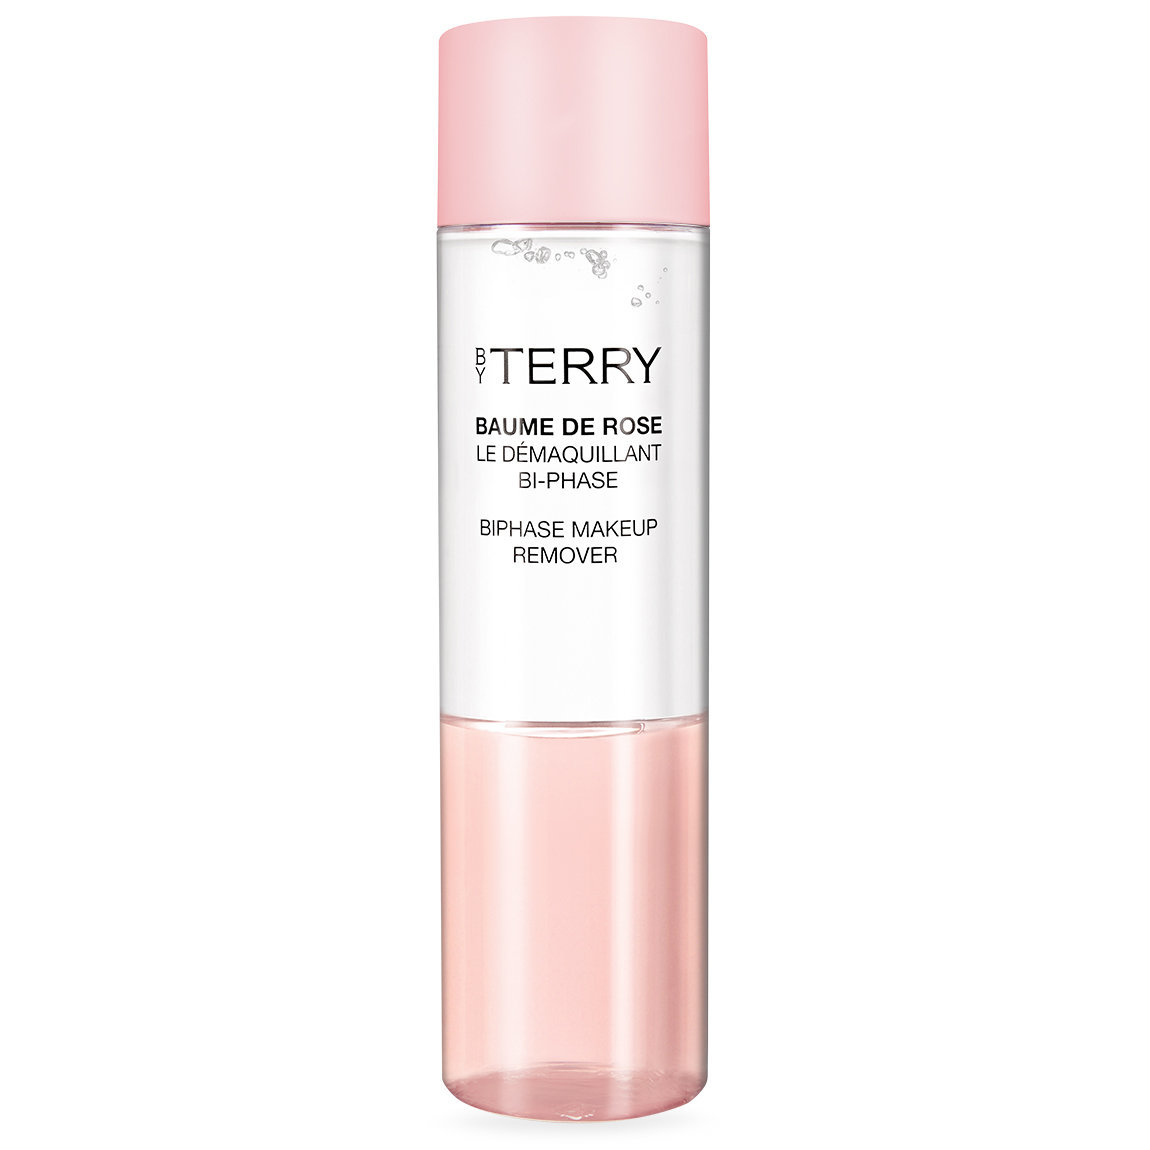 BY TERRY Baume de Rose Bi-Phase Make-up Remover alternative view 1 - product swatch.